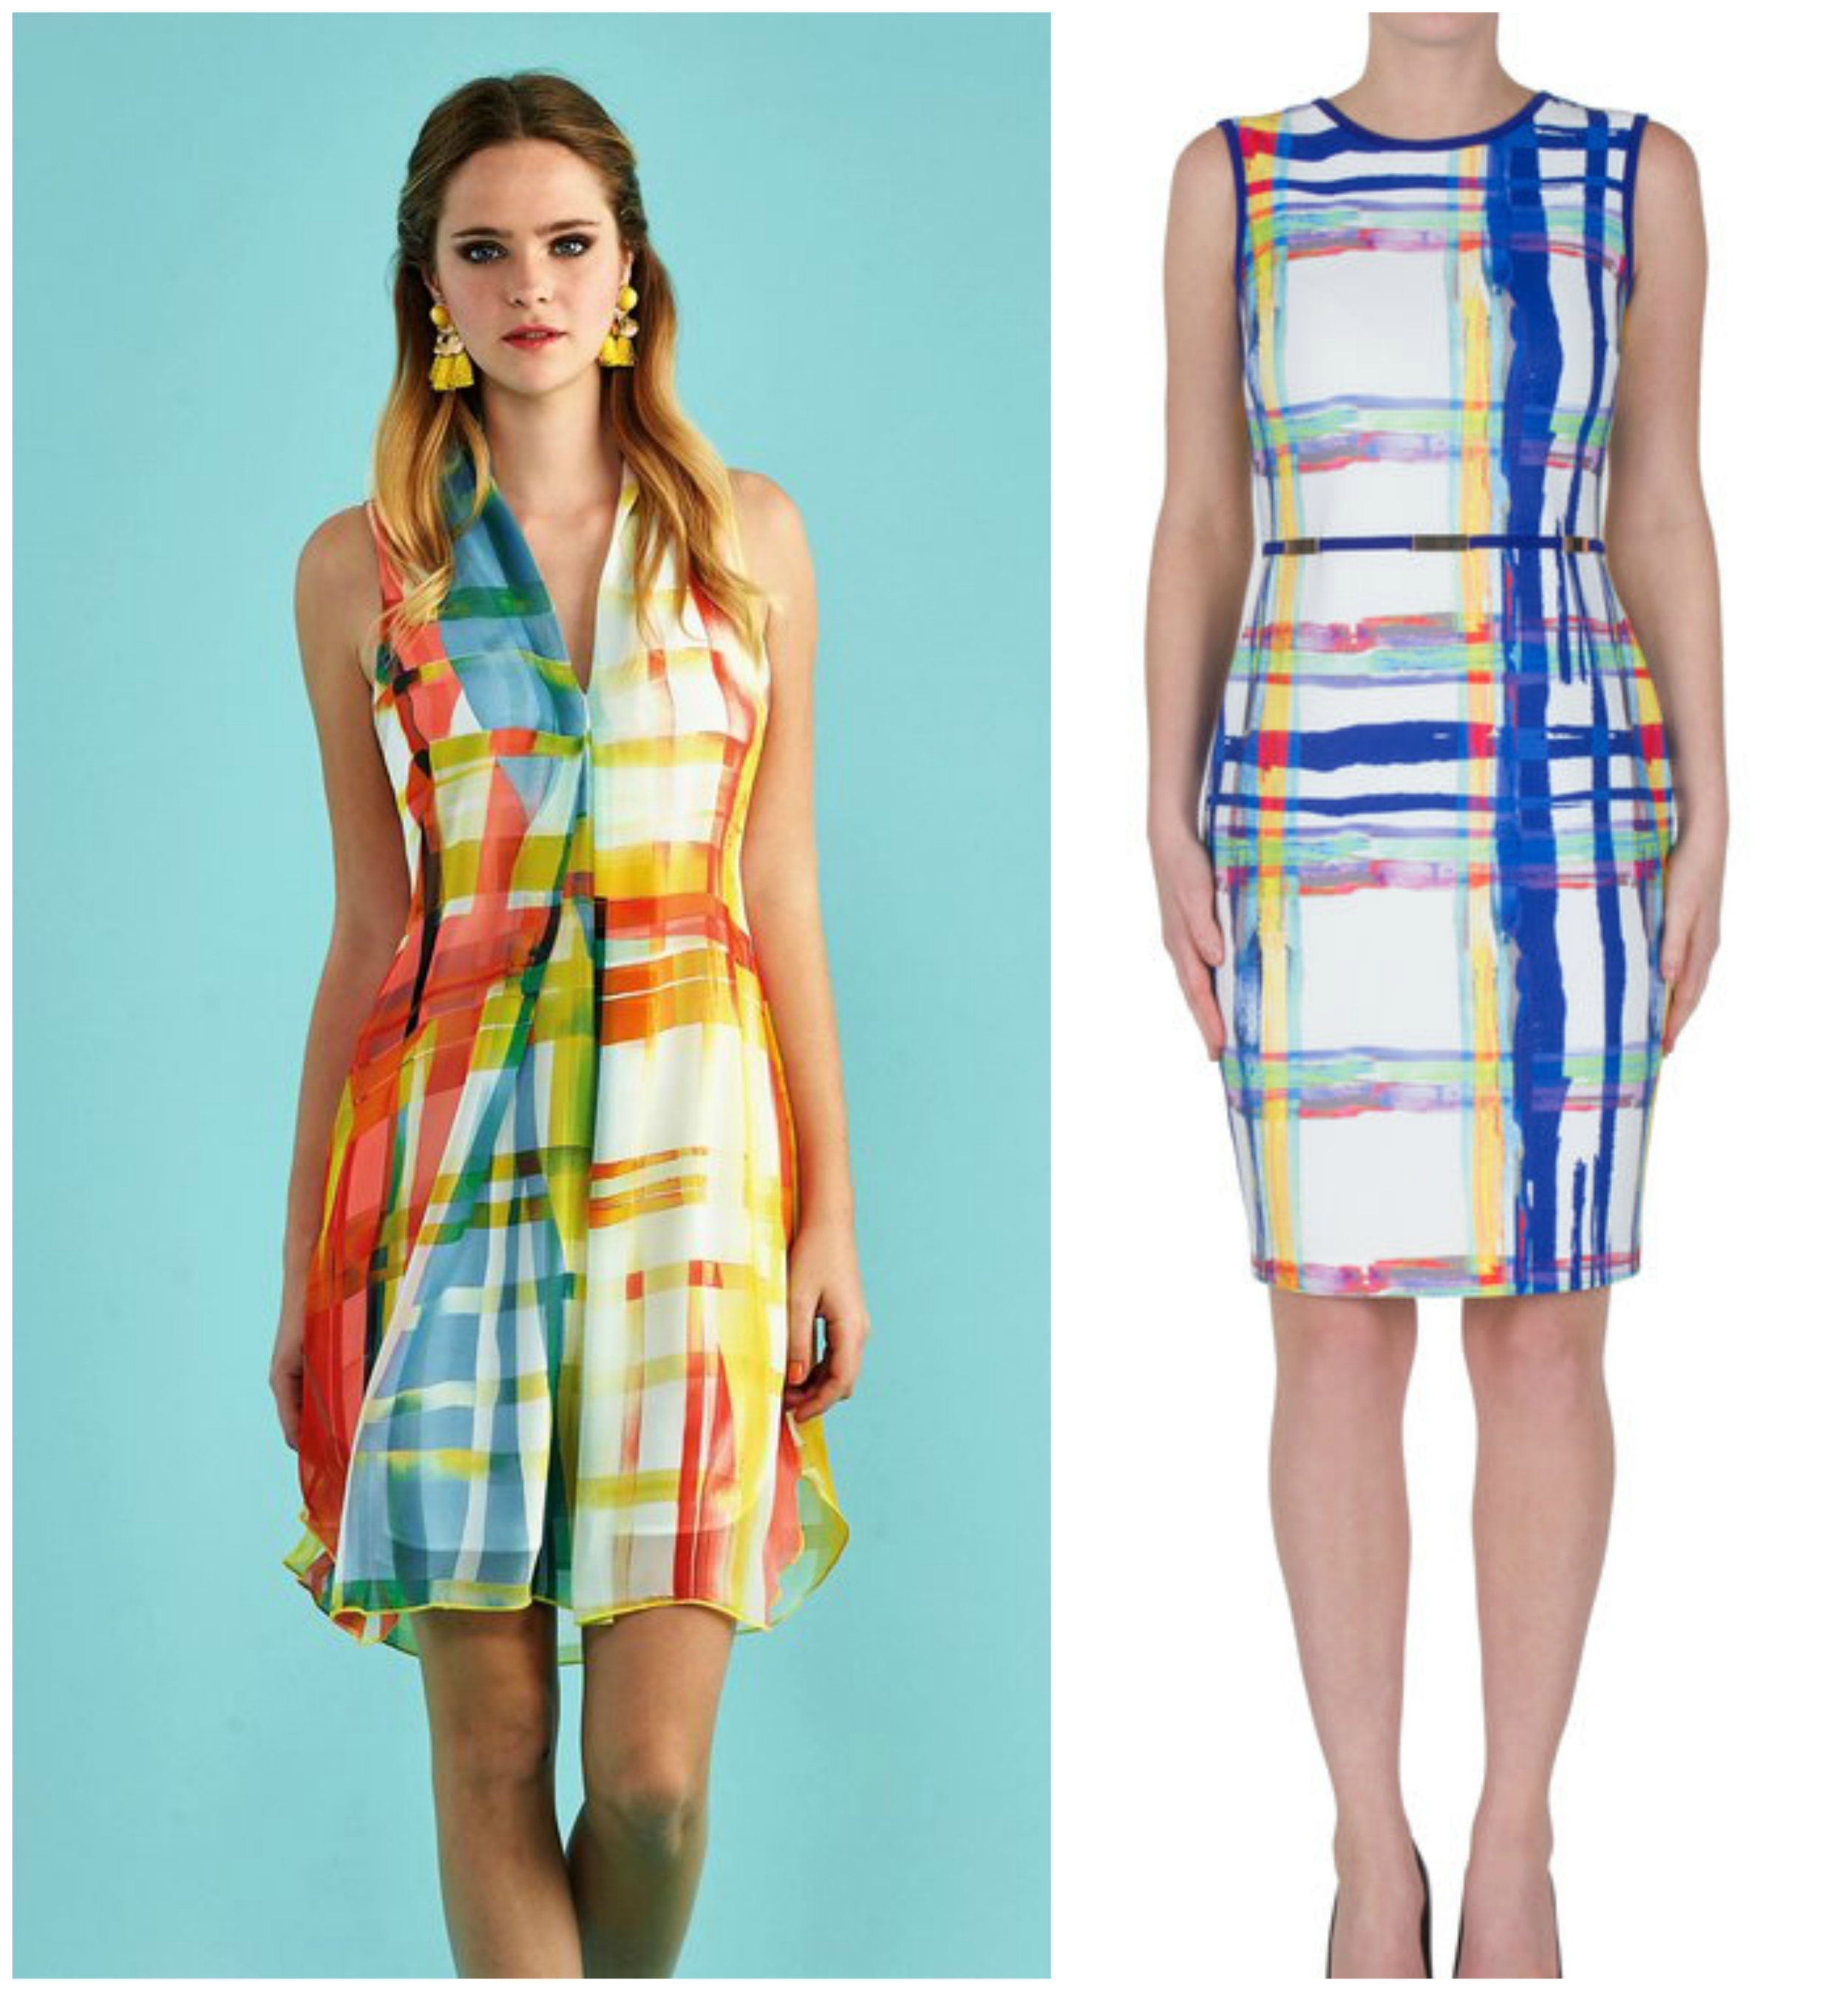 Find allover plaid overwhelming? Deconstructed plaid is a stylish way to play upon the trend in a creative way. The abstract prints used in our  Tayah Print Dress  and  Joseph Ribkoff Plaid Dress  carry the influence of the plaid trend through their use of tartan pattern and overlapping lines.